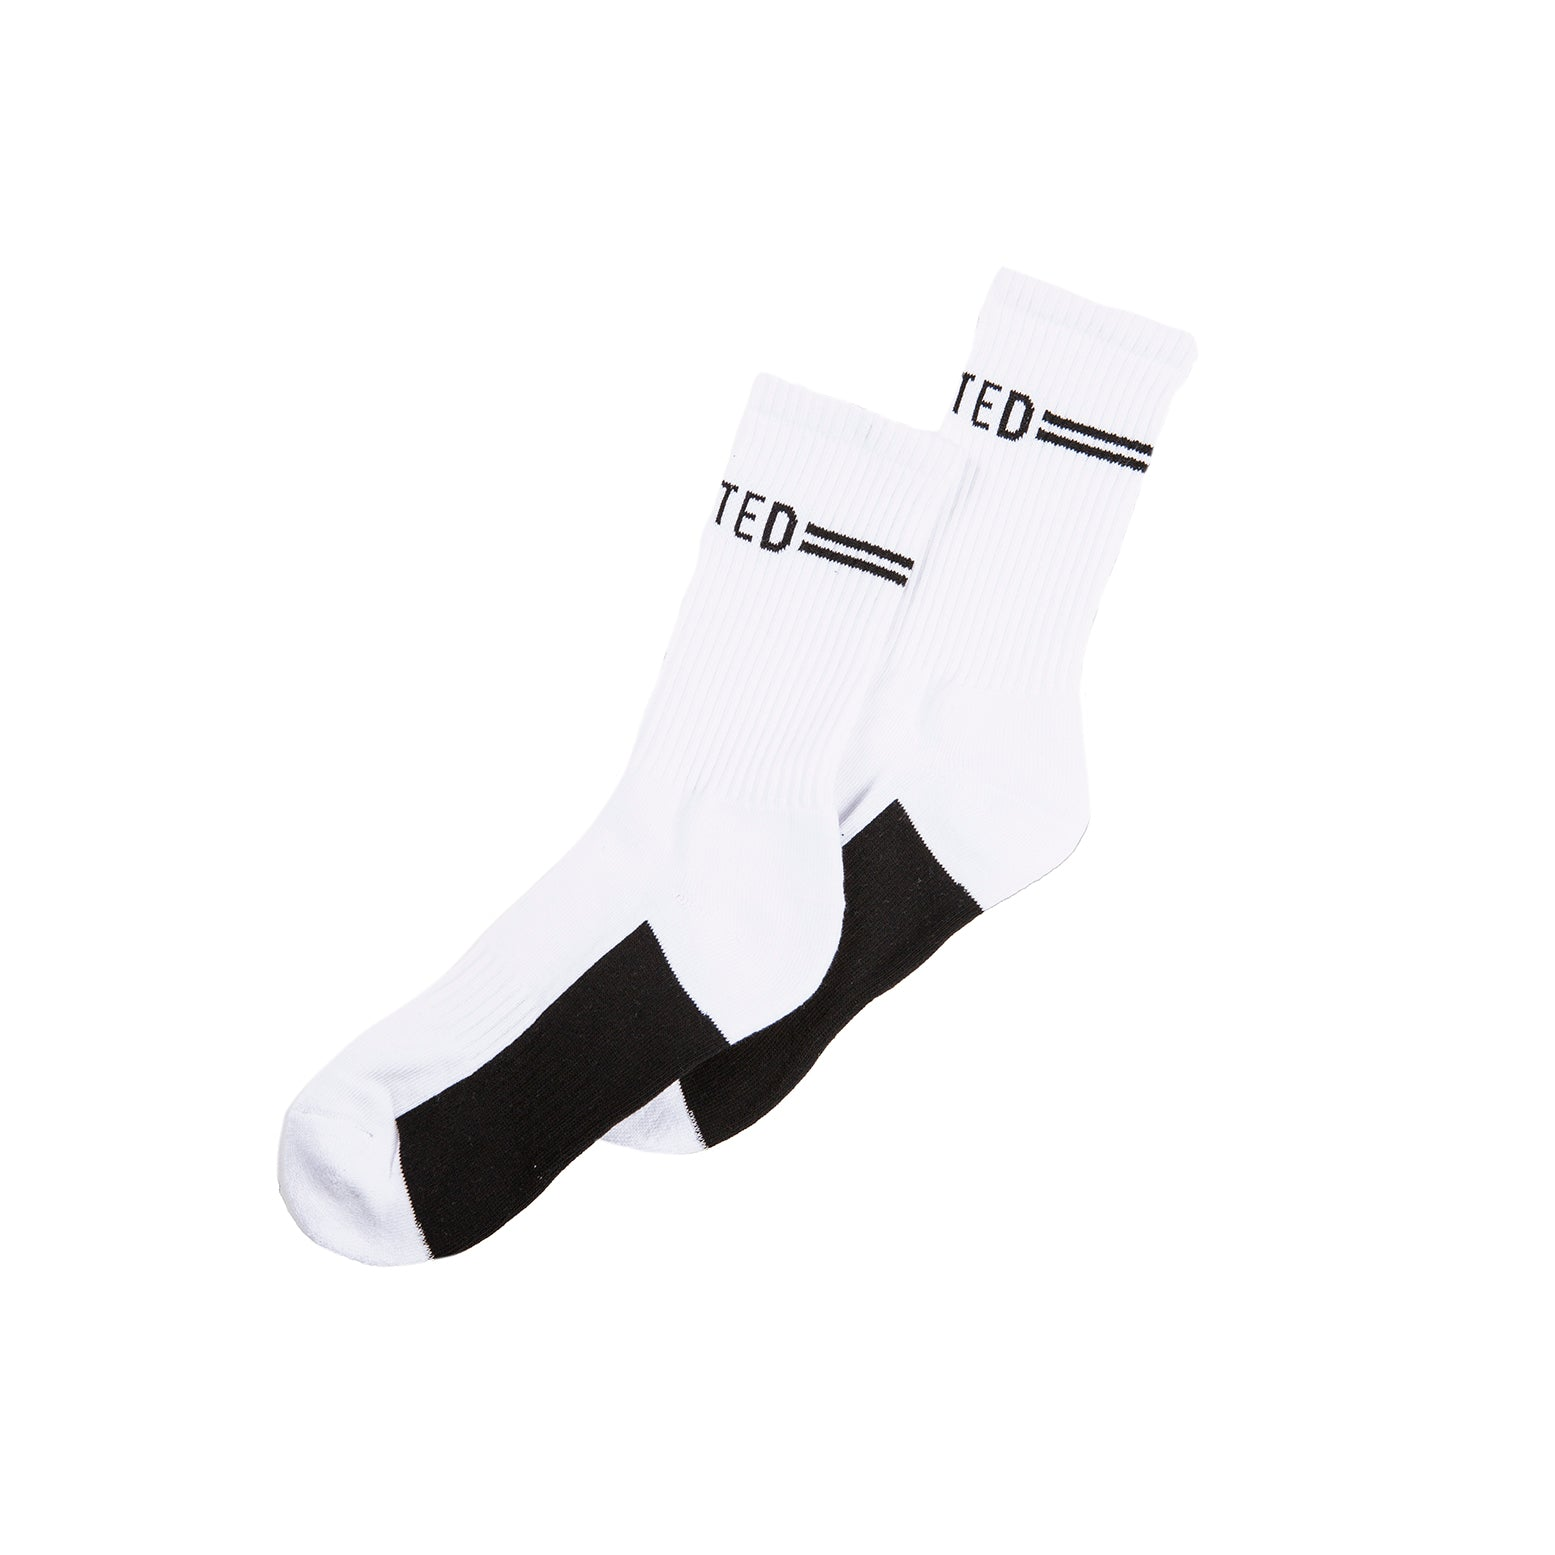 United Signature Socks - White - BMX Clothing